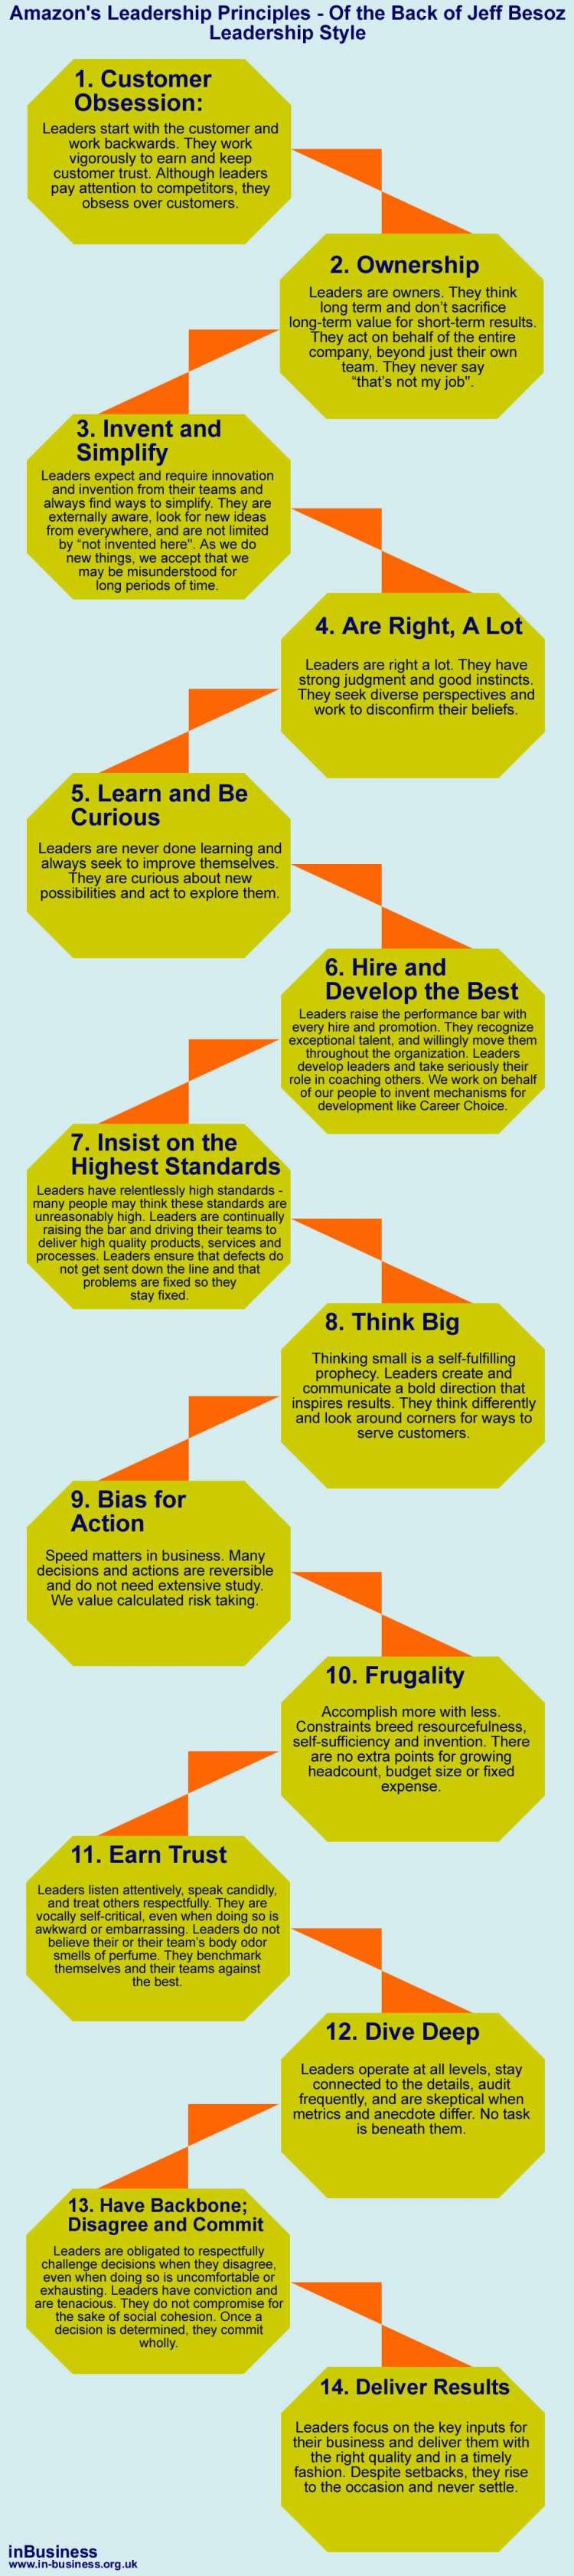 Amazons leadrship principles on the back of Jeff Besoz leadership style - info-graphic